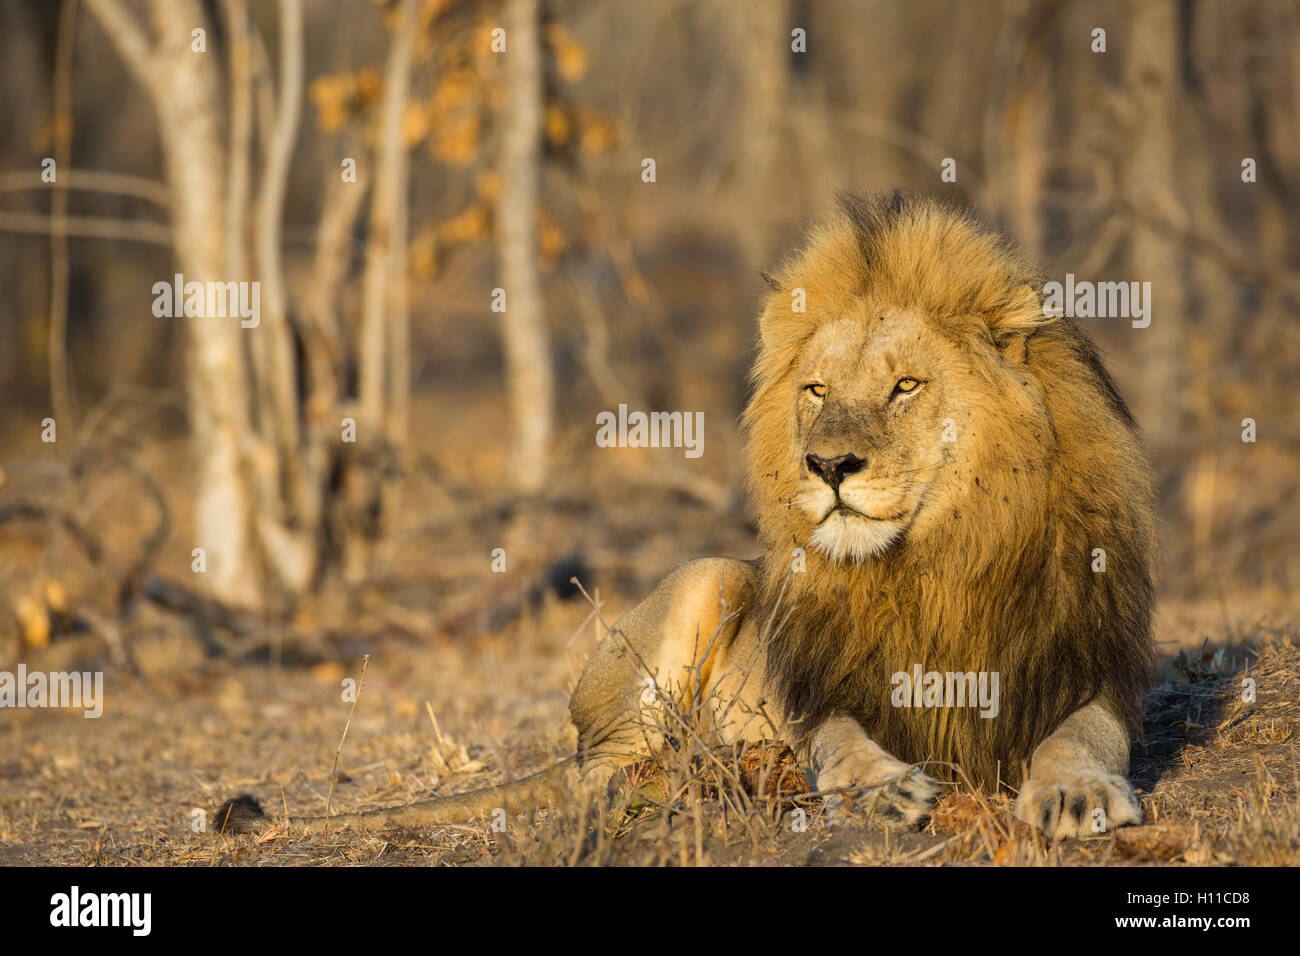 Frontal portrait of a male lion (Panthera leo) with a big mane in warm light - Stock Image